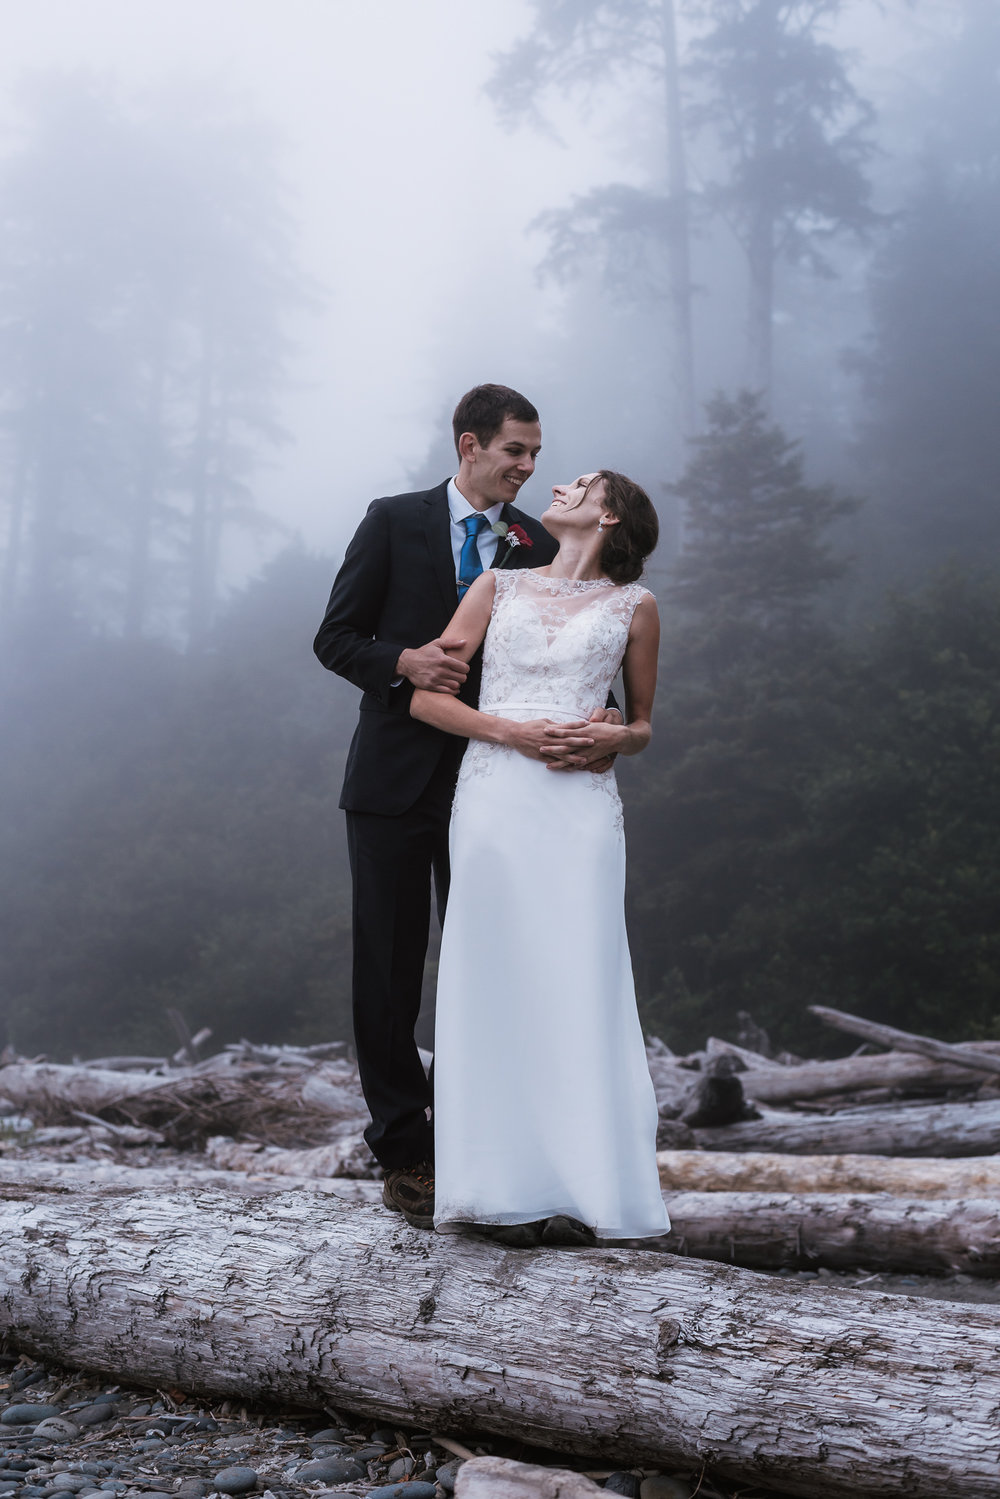 Couple stands on an old piece of driftwood and stares deeply into each other's eyes.